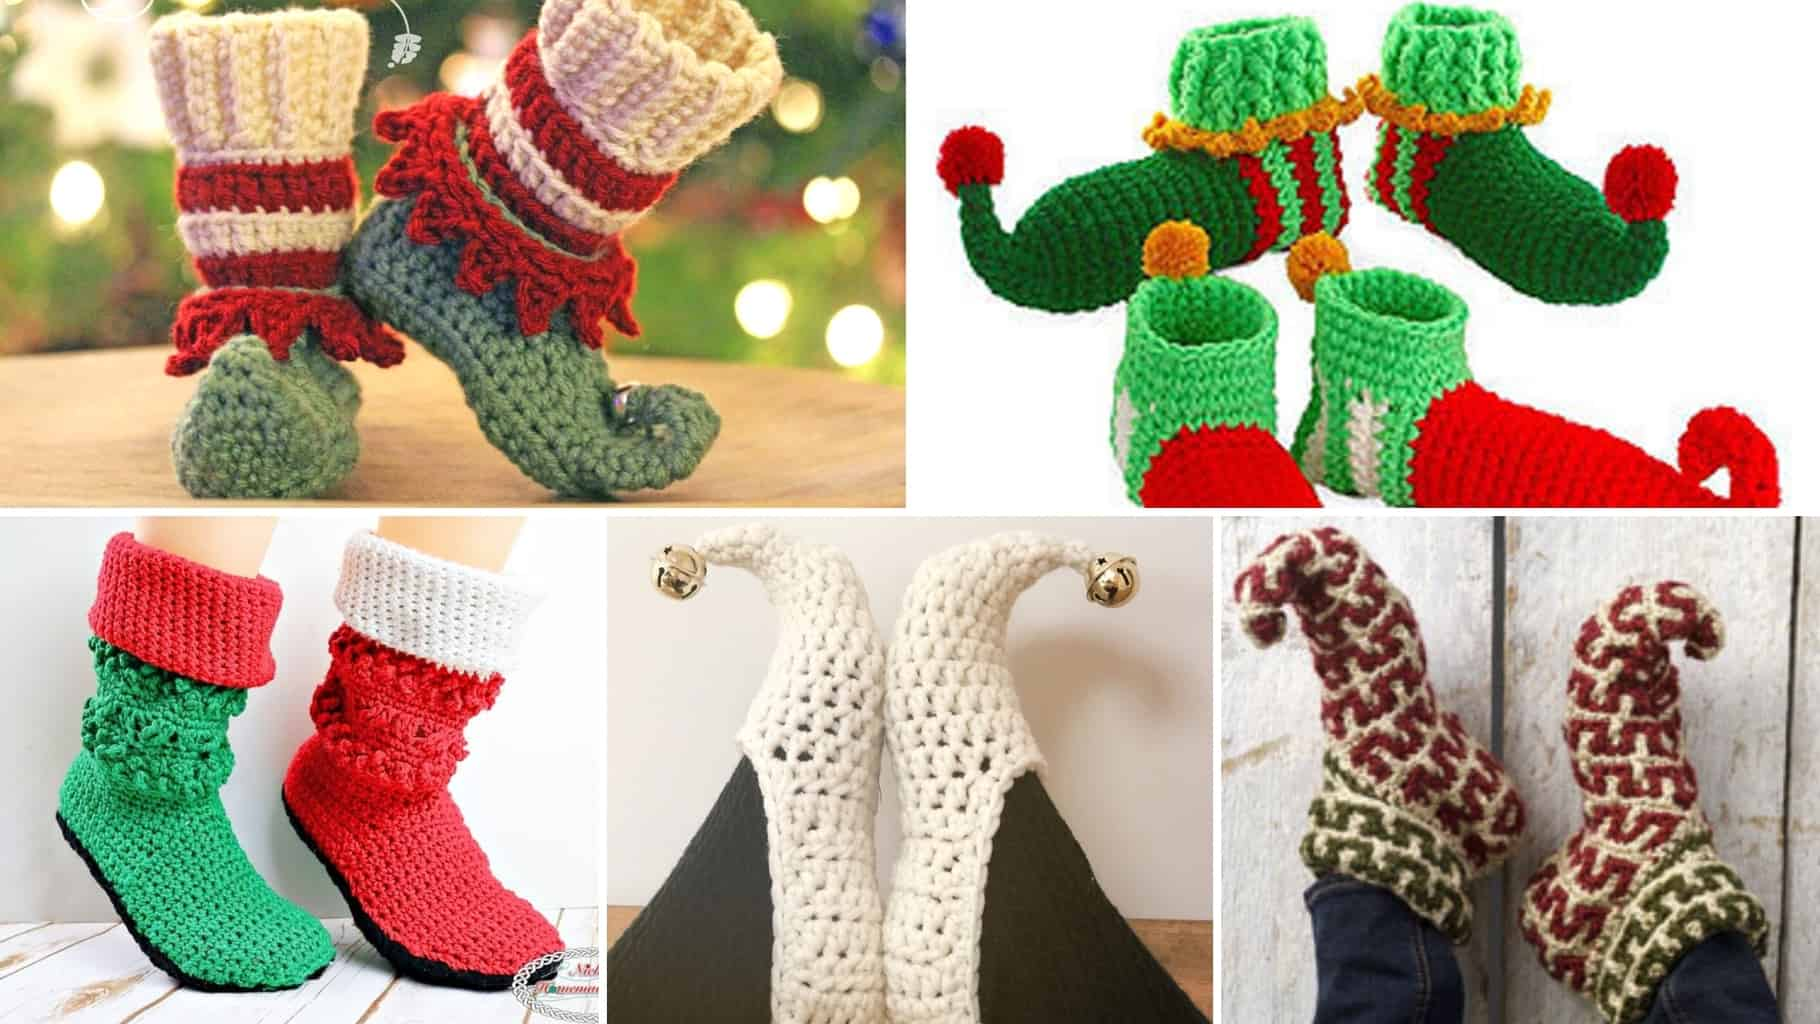 Crochet Elf Slipper Patterns Easycrochet Com